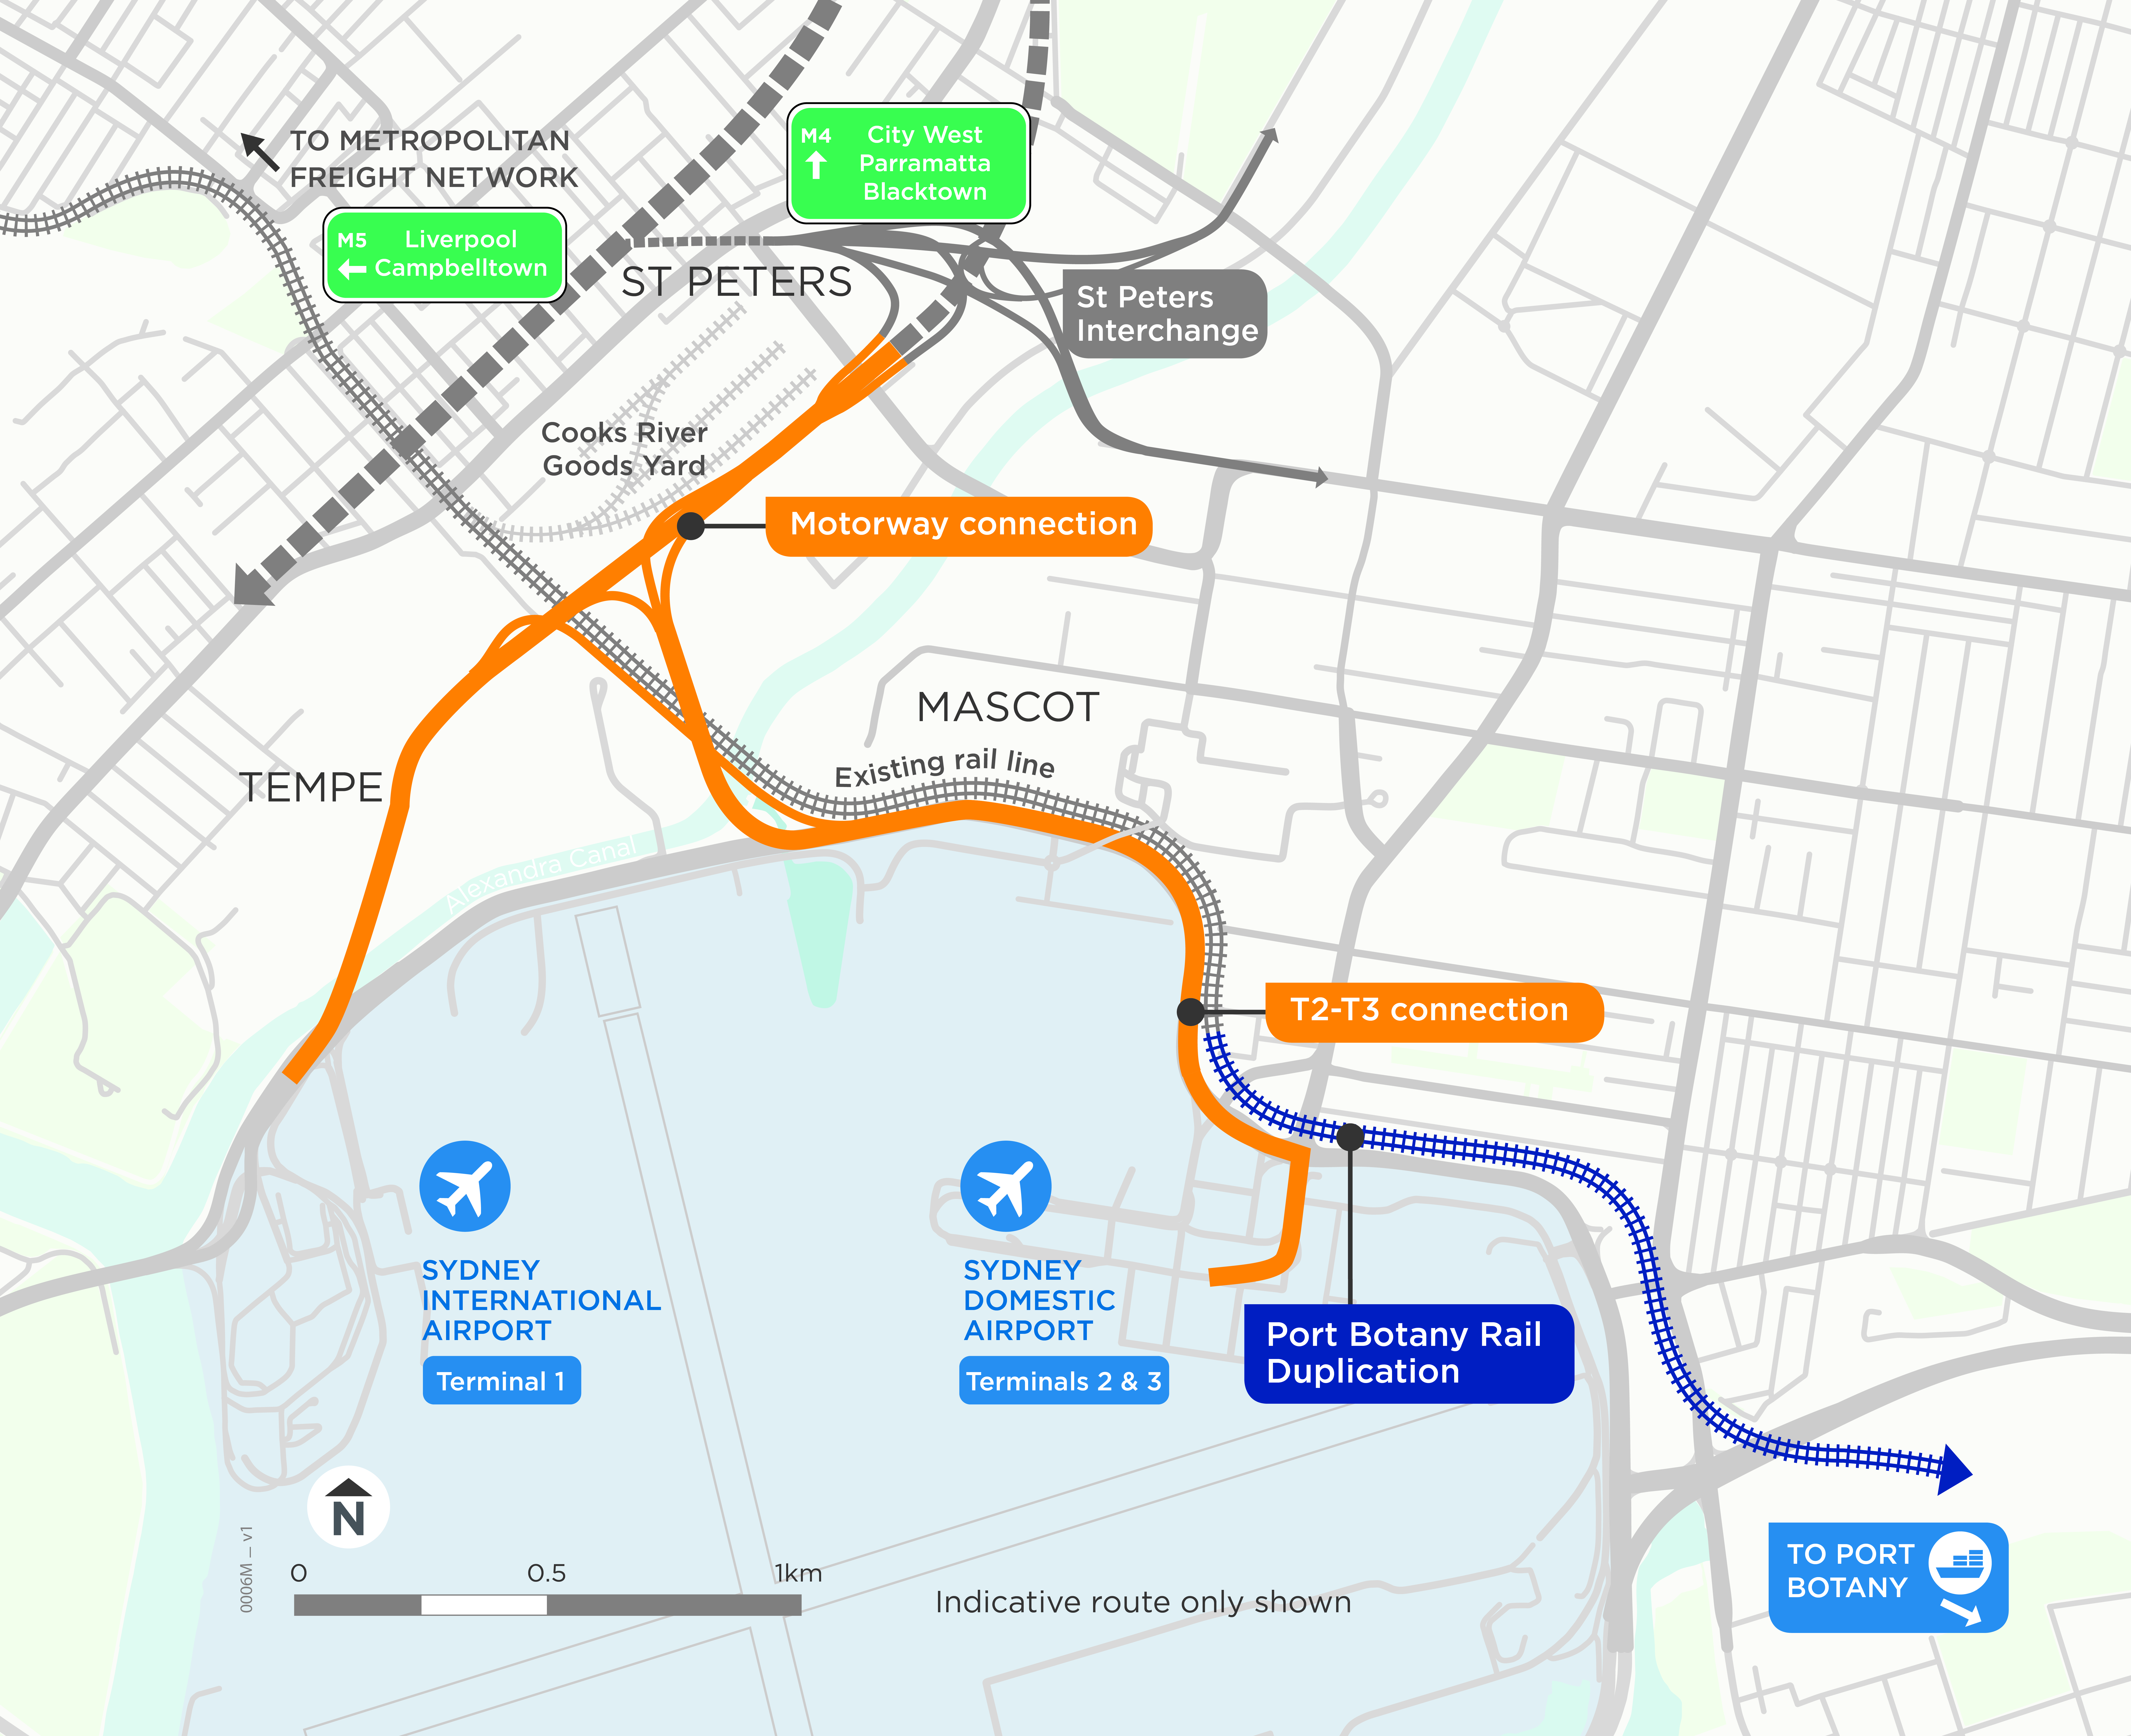 sydney airport route map Community Consultation For Sydney Gateway sydney airport route map